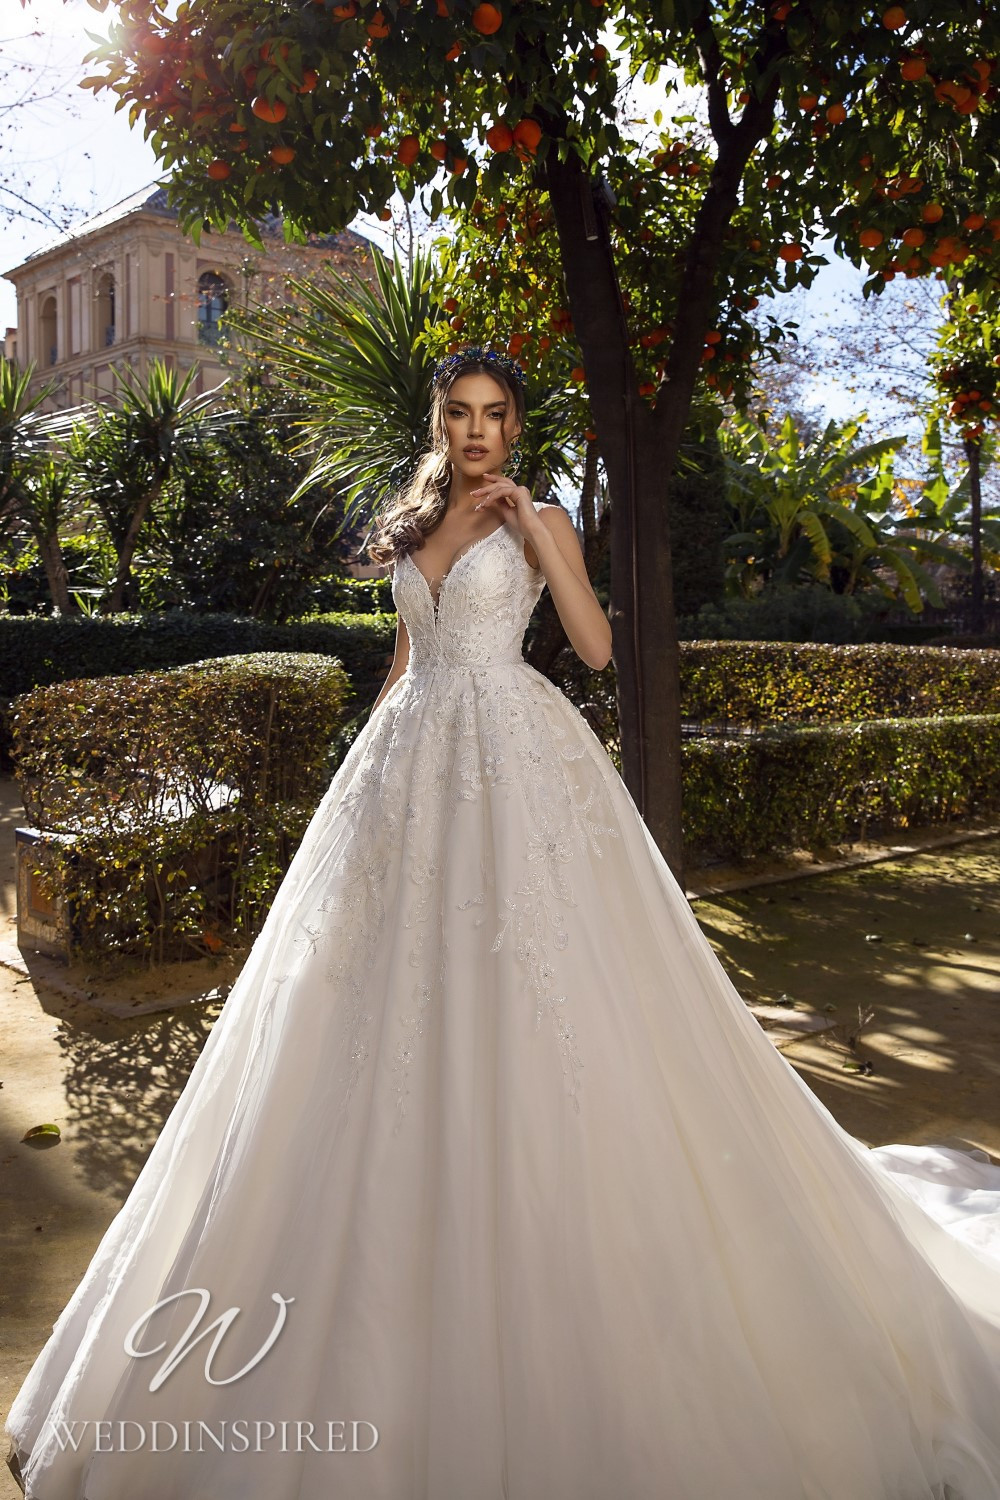 A Maks Mariano tulle and lace princess wedding dress